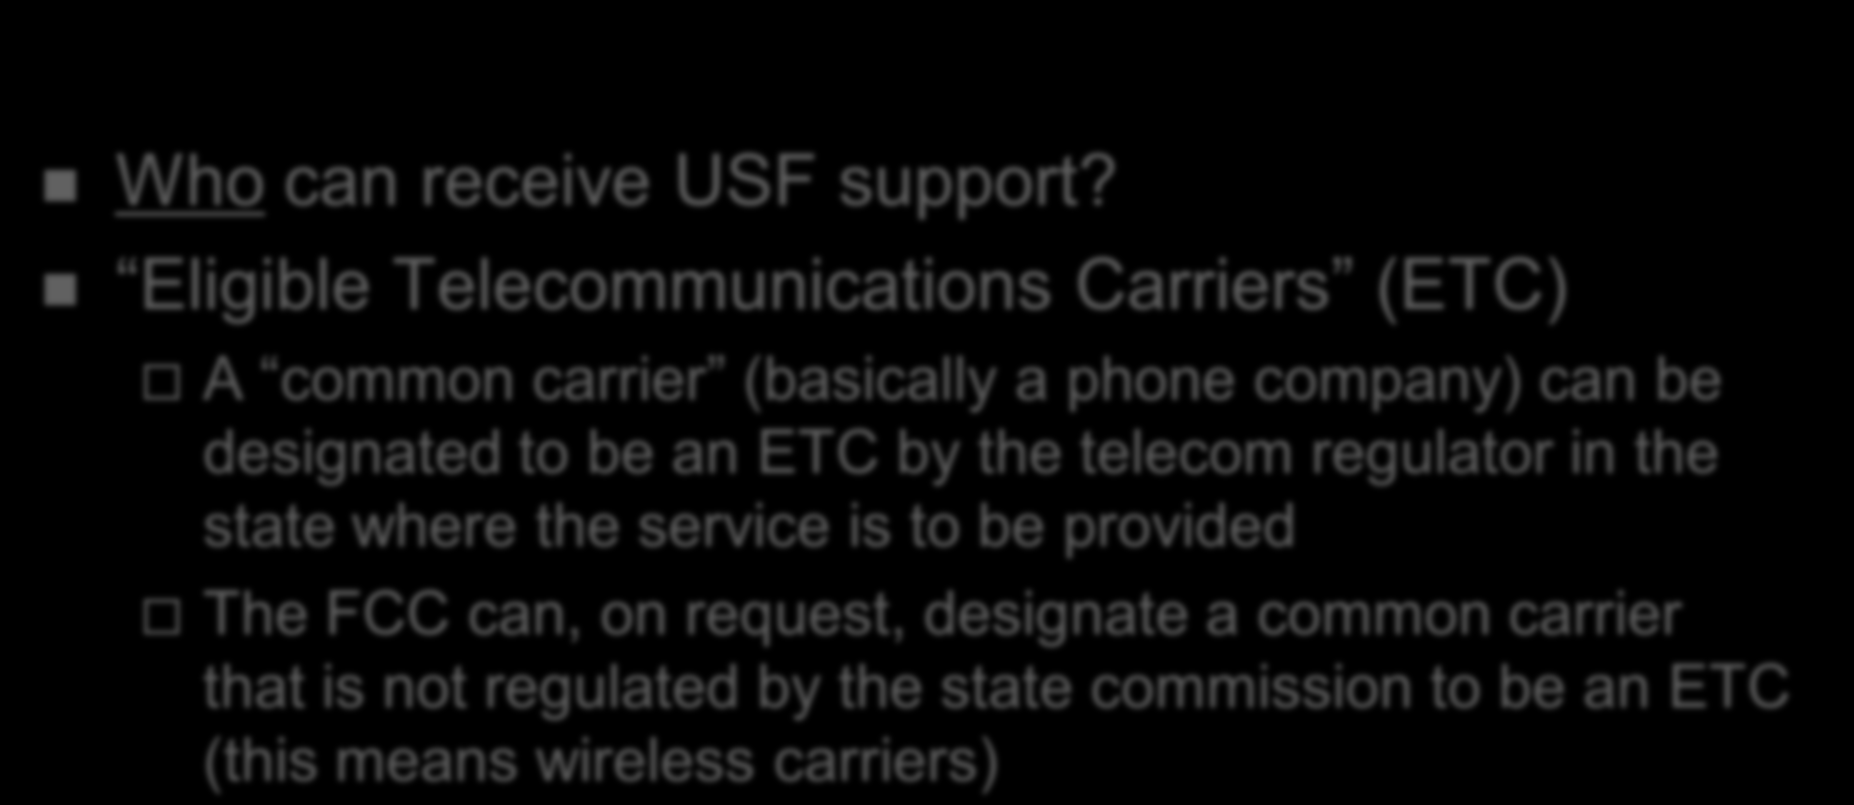 Universal Service in Telecom Act Who can receive USF support?